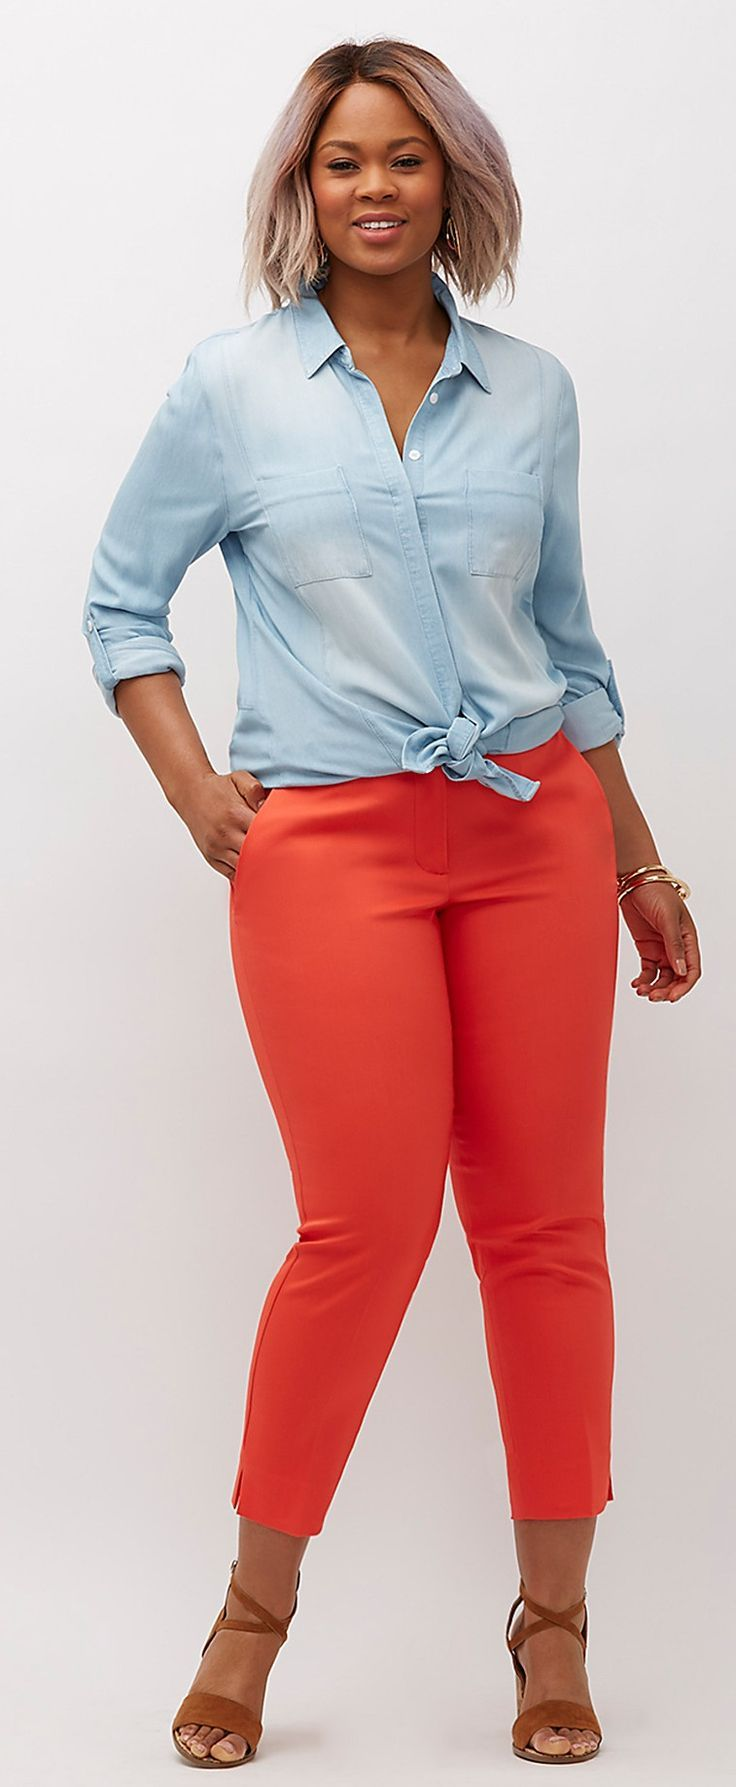 10 best images about curvy girl fashion on pinterest ankle pants plus size outfits and skirts Fashion style for curvy